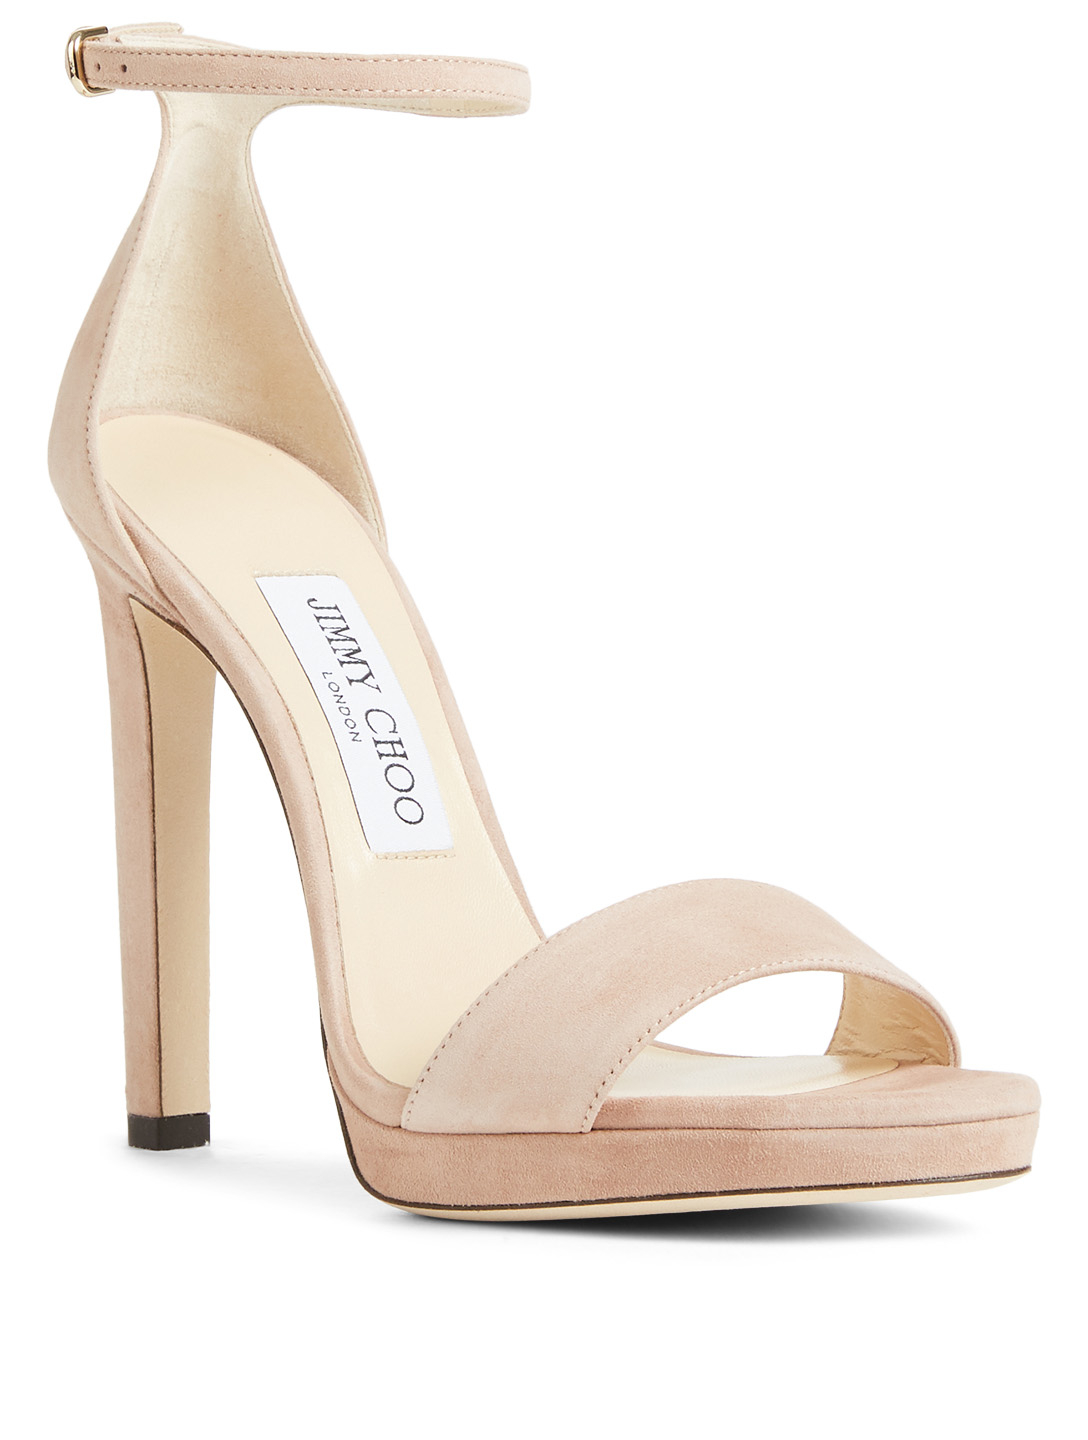 JIMMY CHOO Misty 120 Suede Platform Sandals Women's Neutral